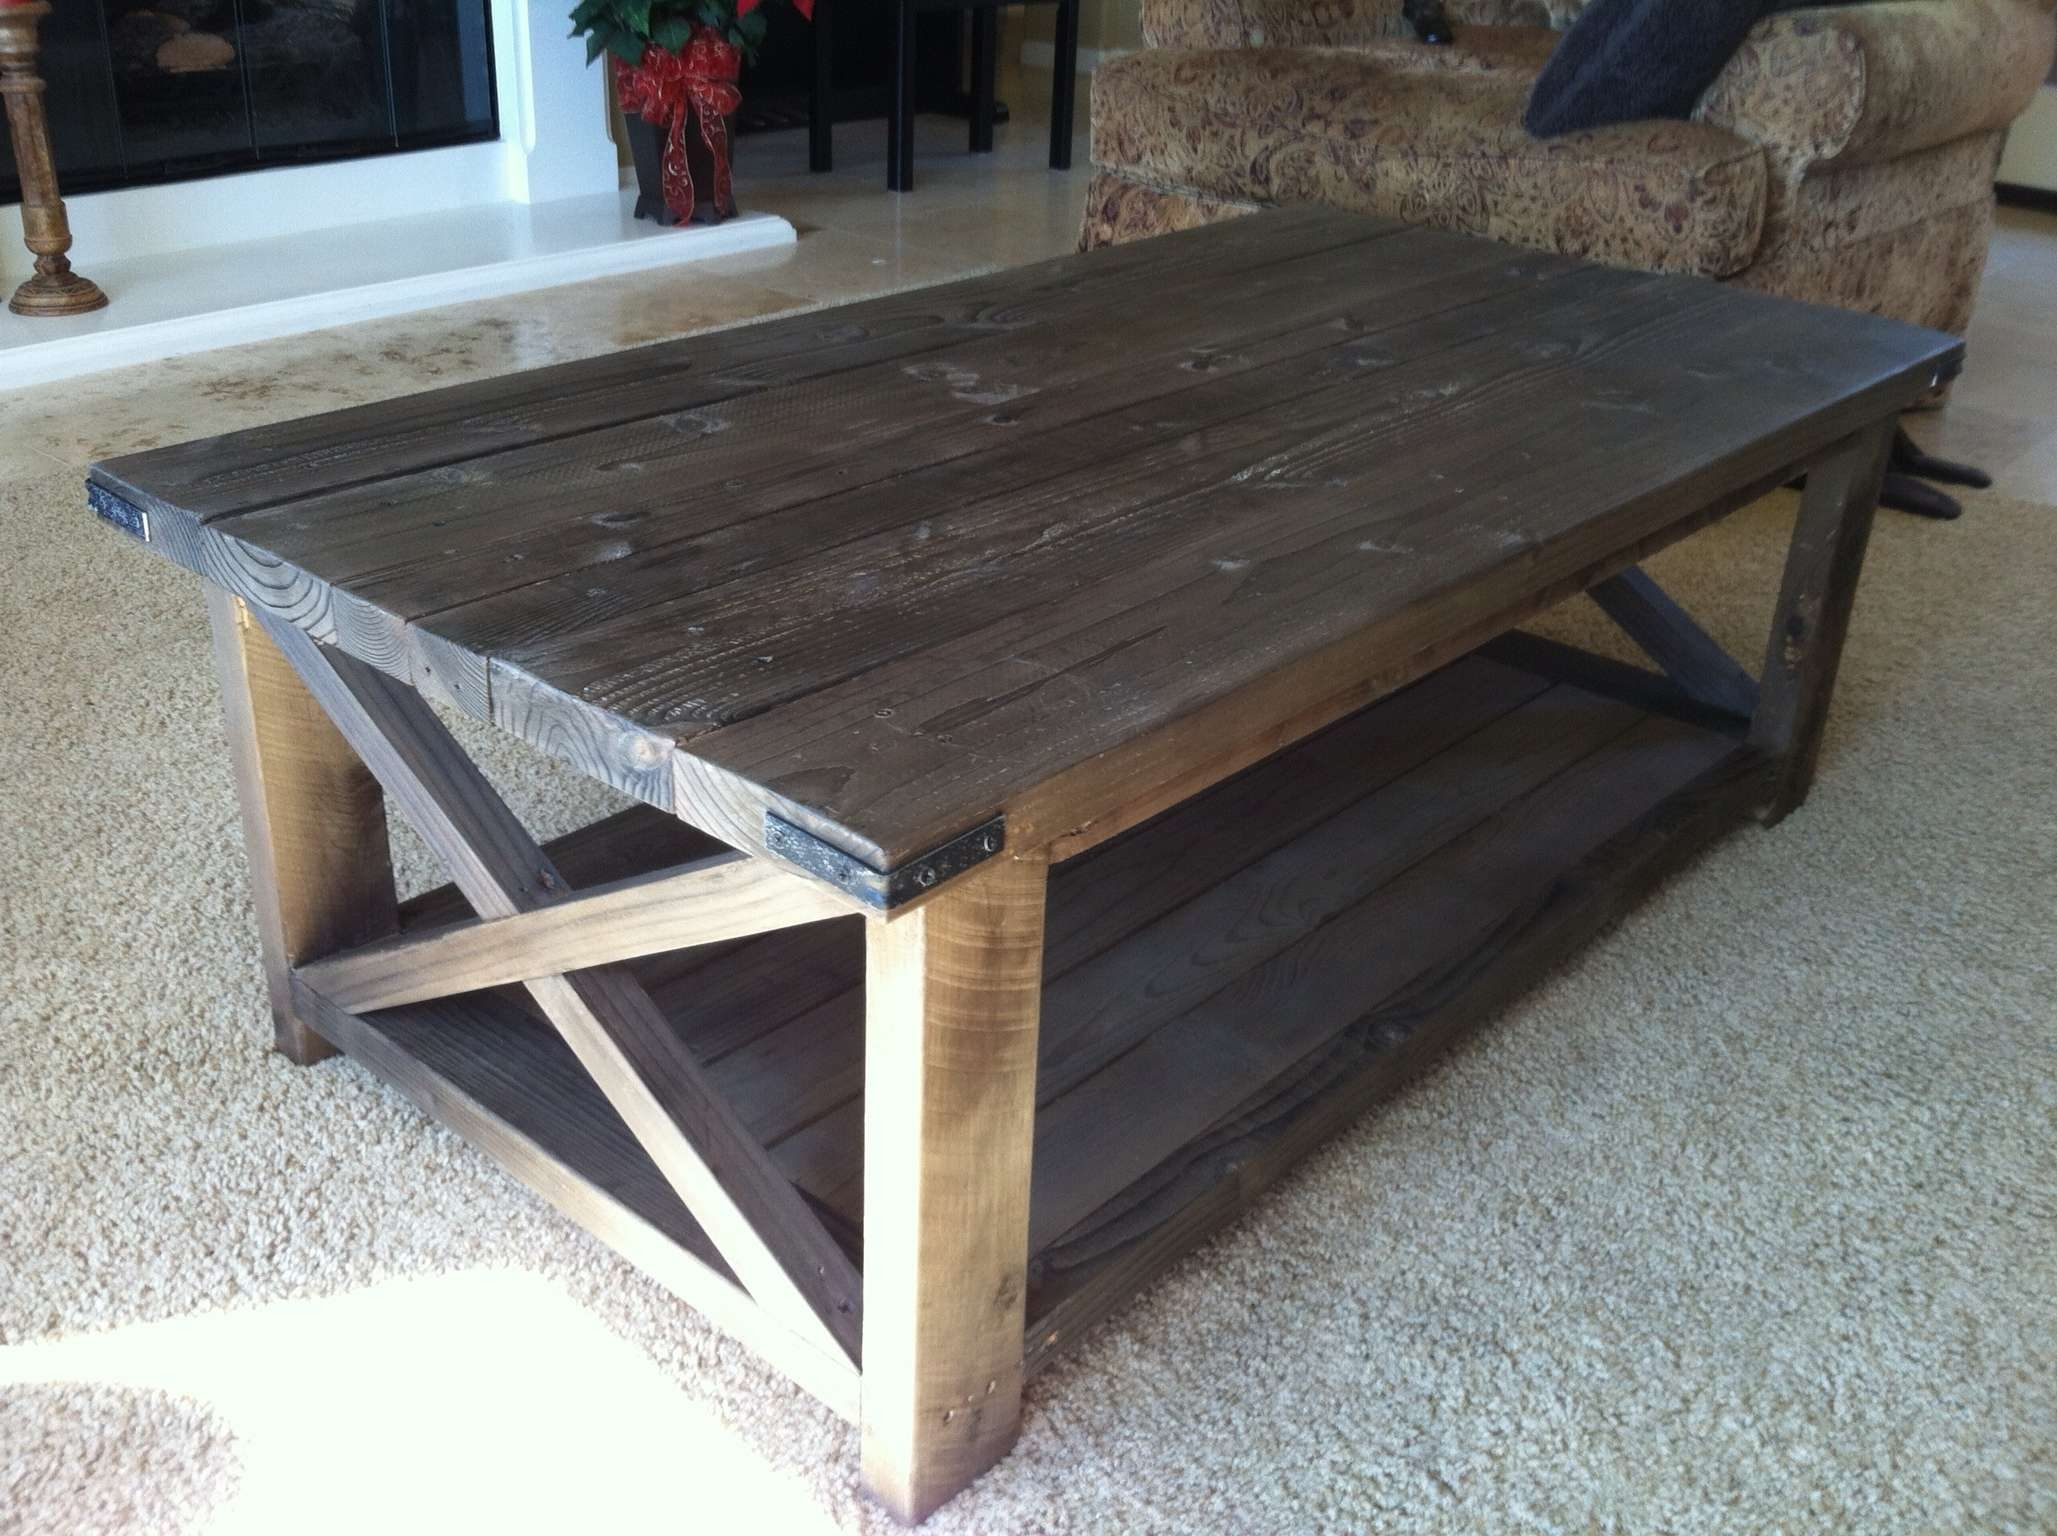 Rustic X Coffee Table – Diy Projects Inside Most Popular Rustic Coffee Tables With Bottom Shelf (View 14 of 20)